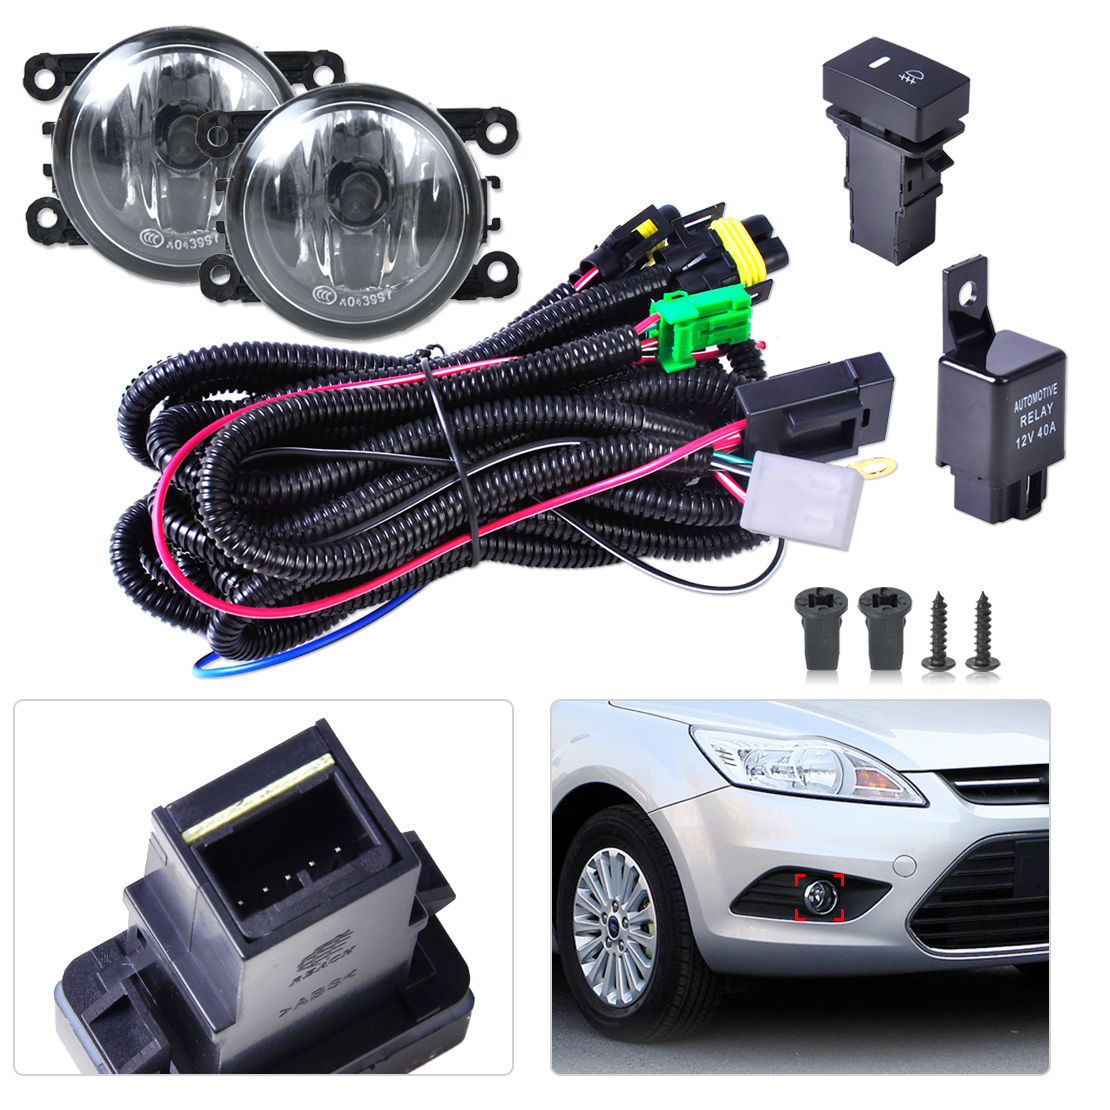 Black New Wiring Harness Sockets + Switch + 2 Fog Lights H11 Lamp 12V 55W Kit for Ford Mustang Lincoln Navigator Subaru Outback(China (Mainland))